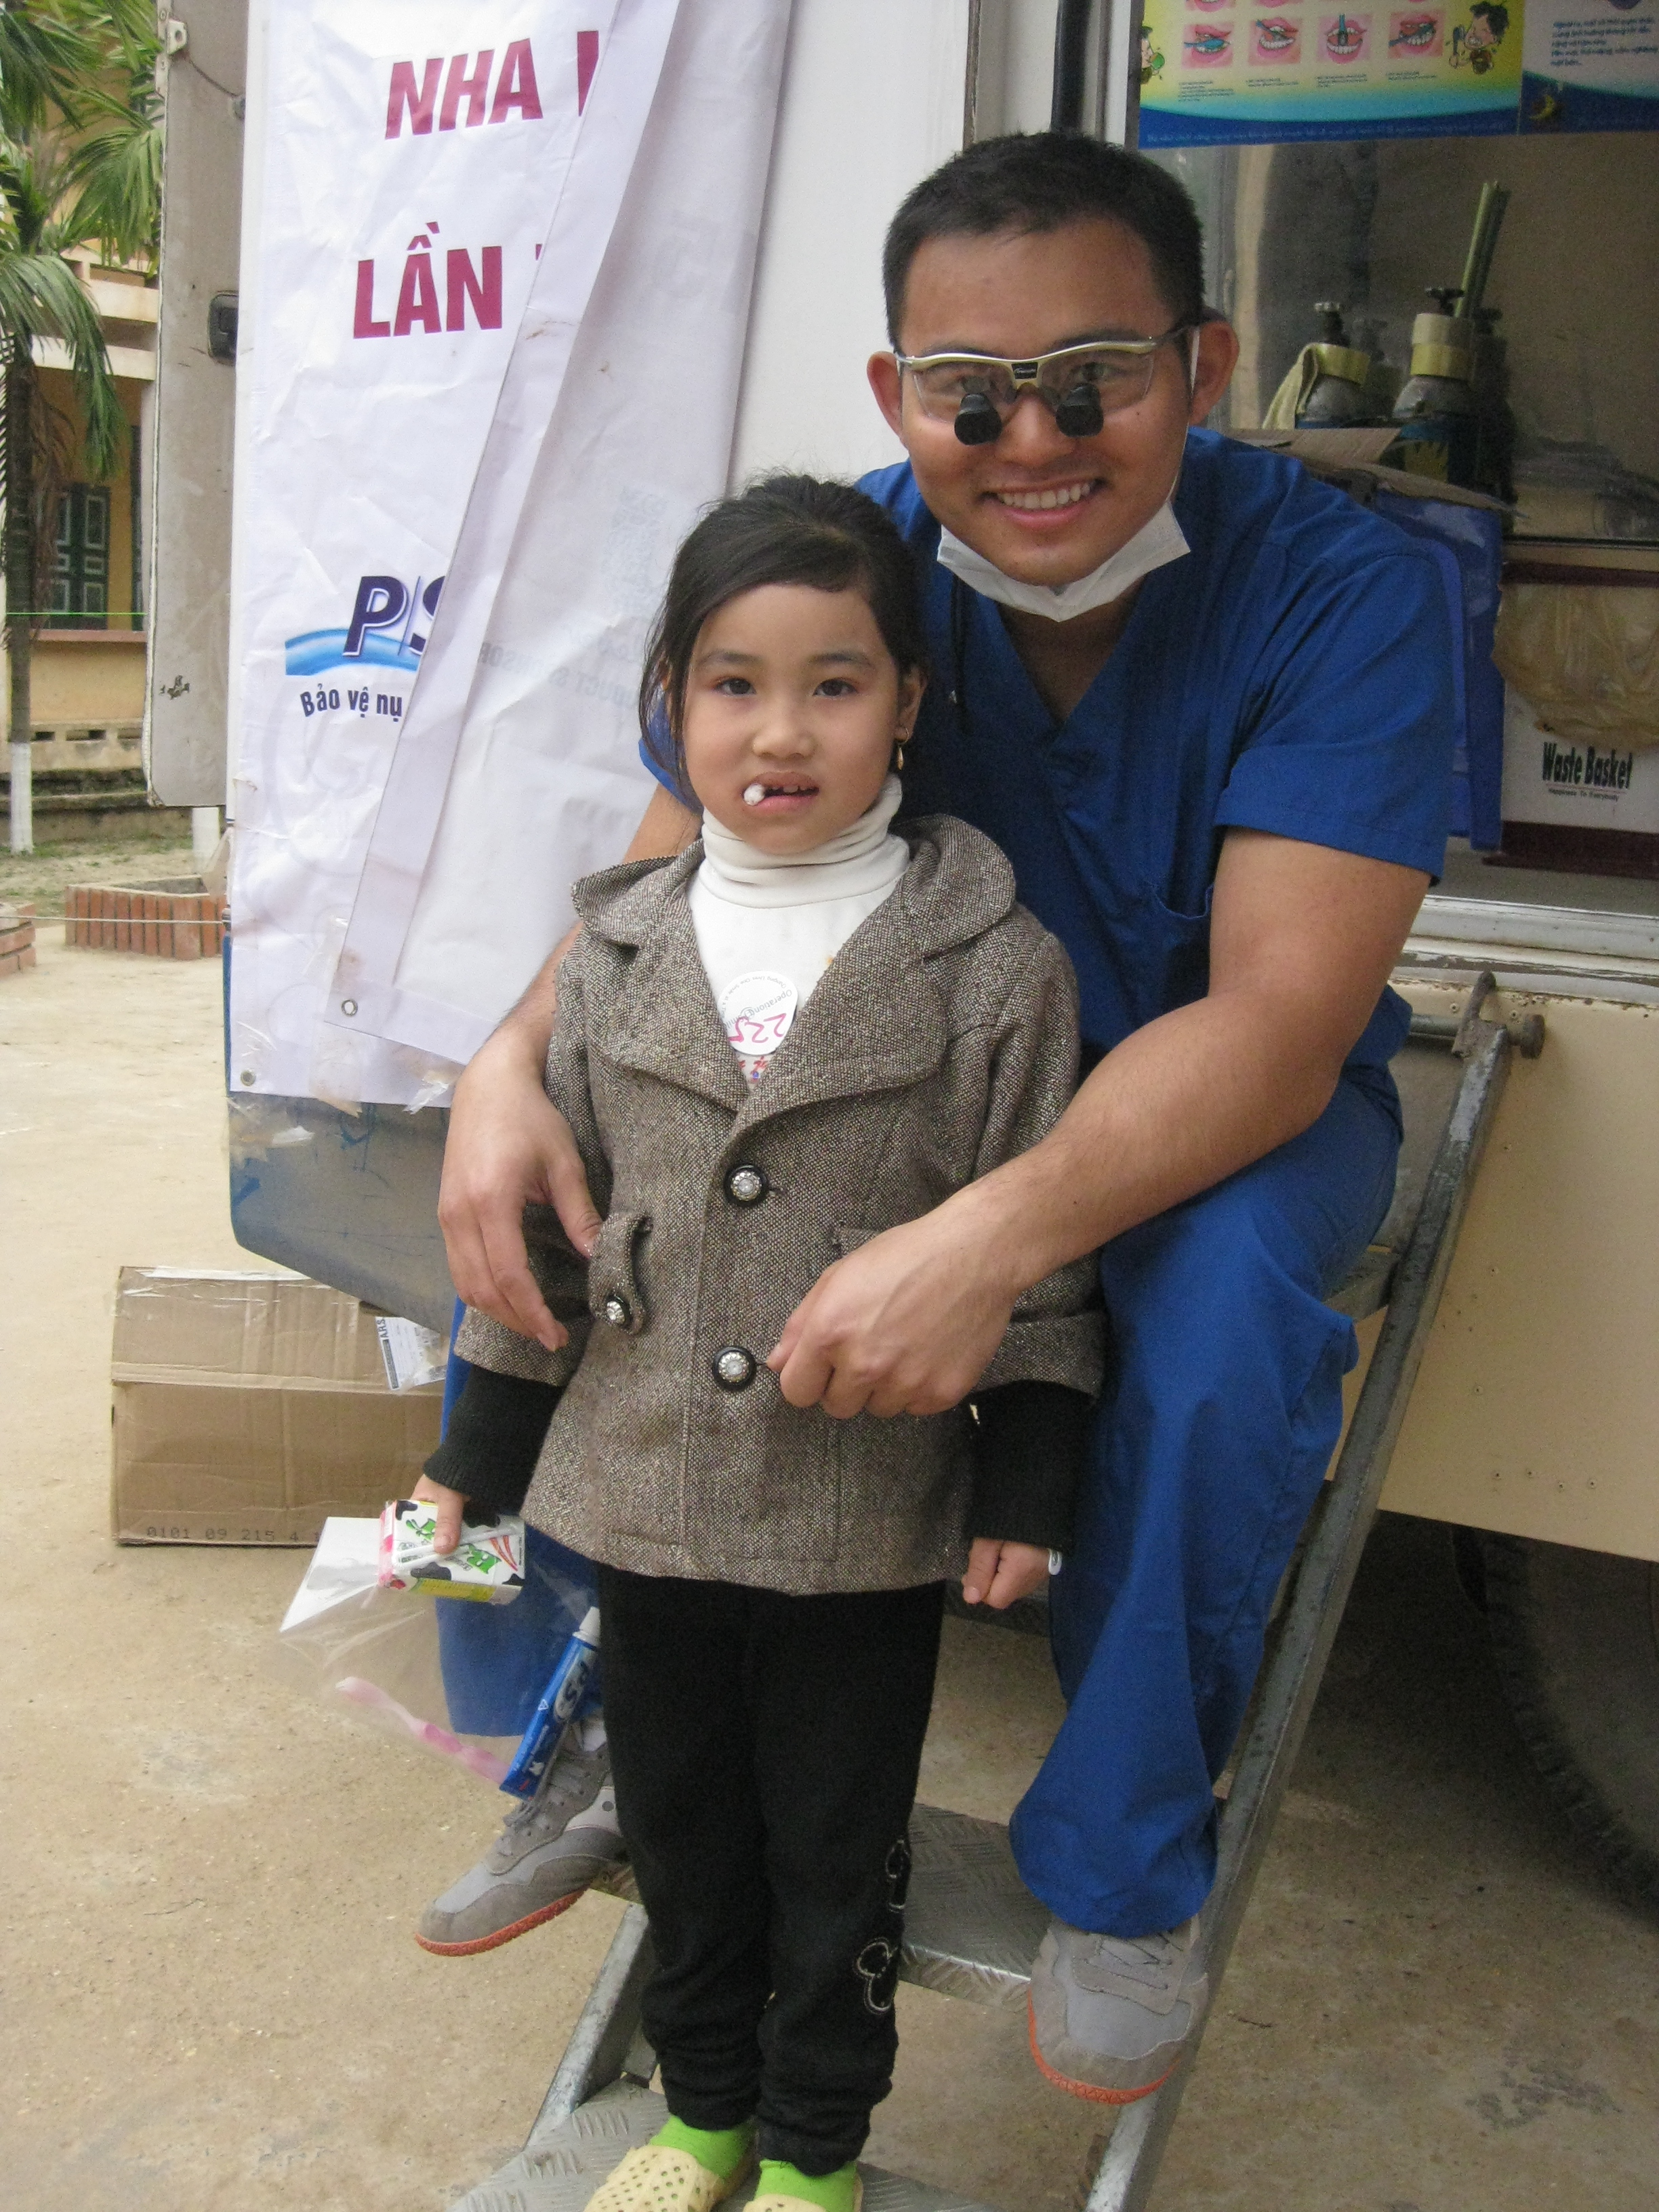 Dr. Tuan Nhu sitting with a little girl after treatment in Vietnam on a dental relief effort trip.